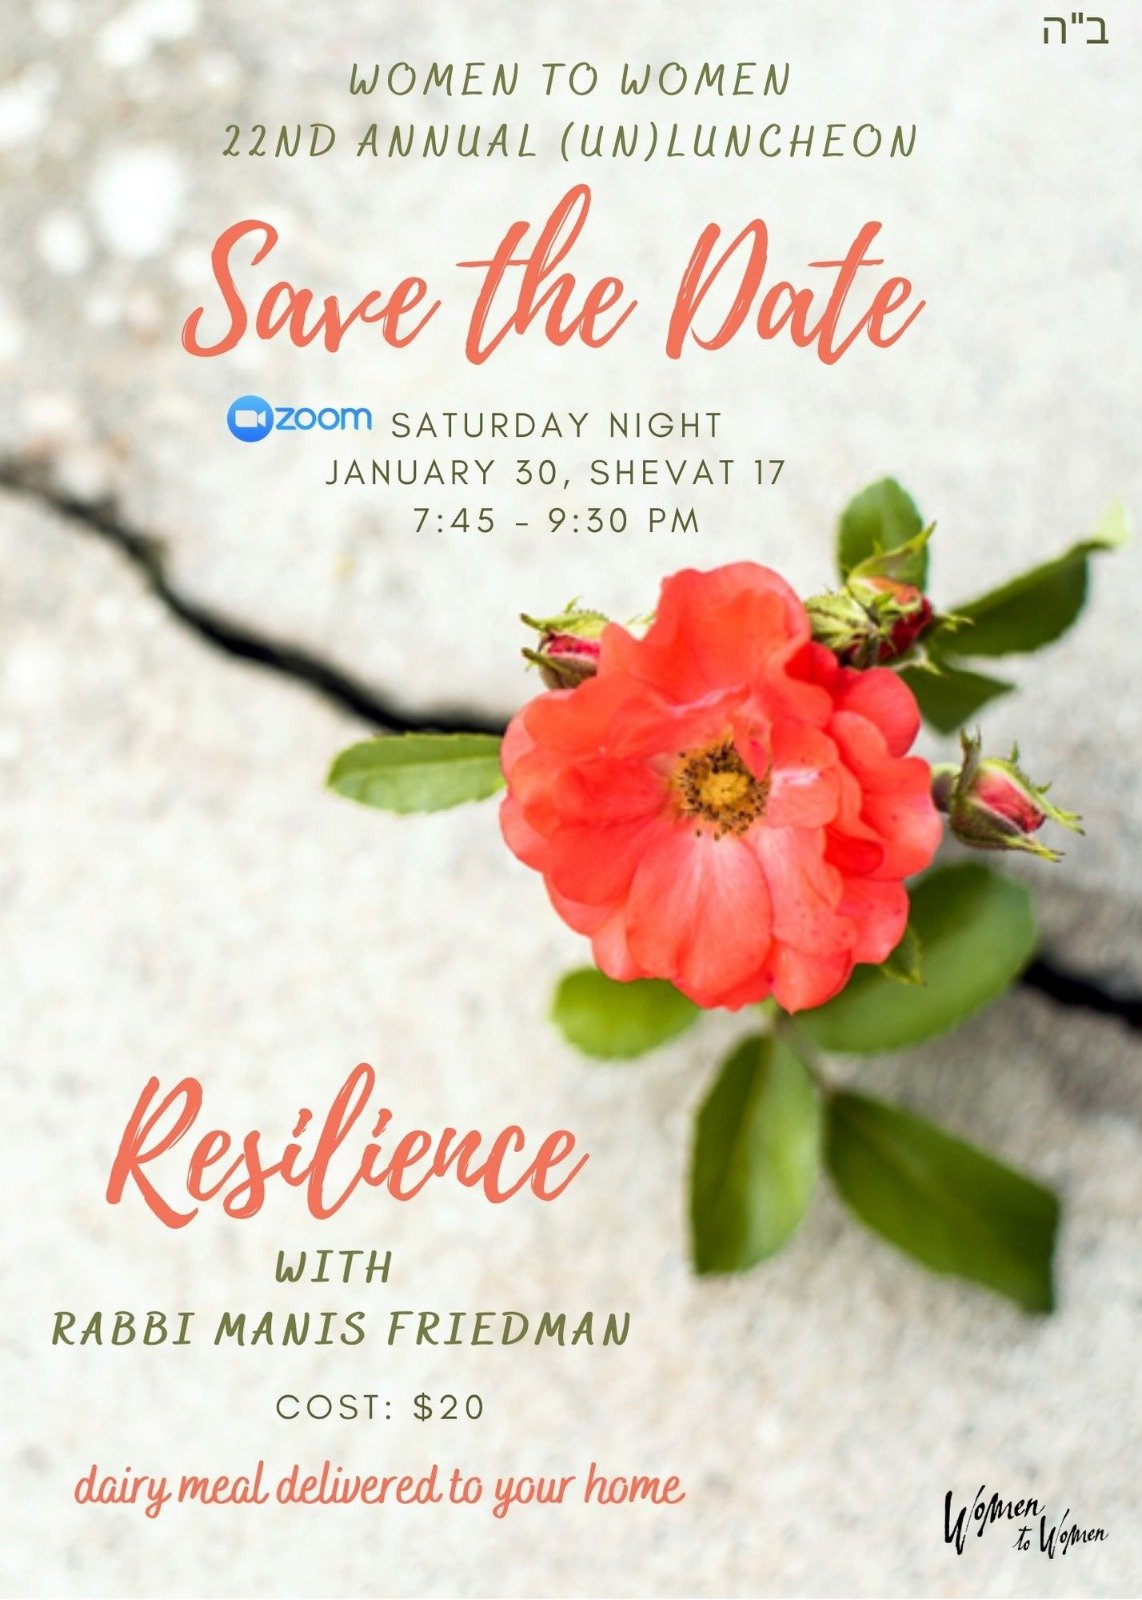 save the date luncheon 5781.jpeg